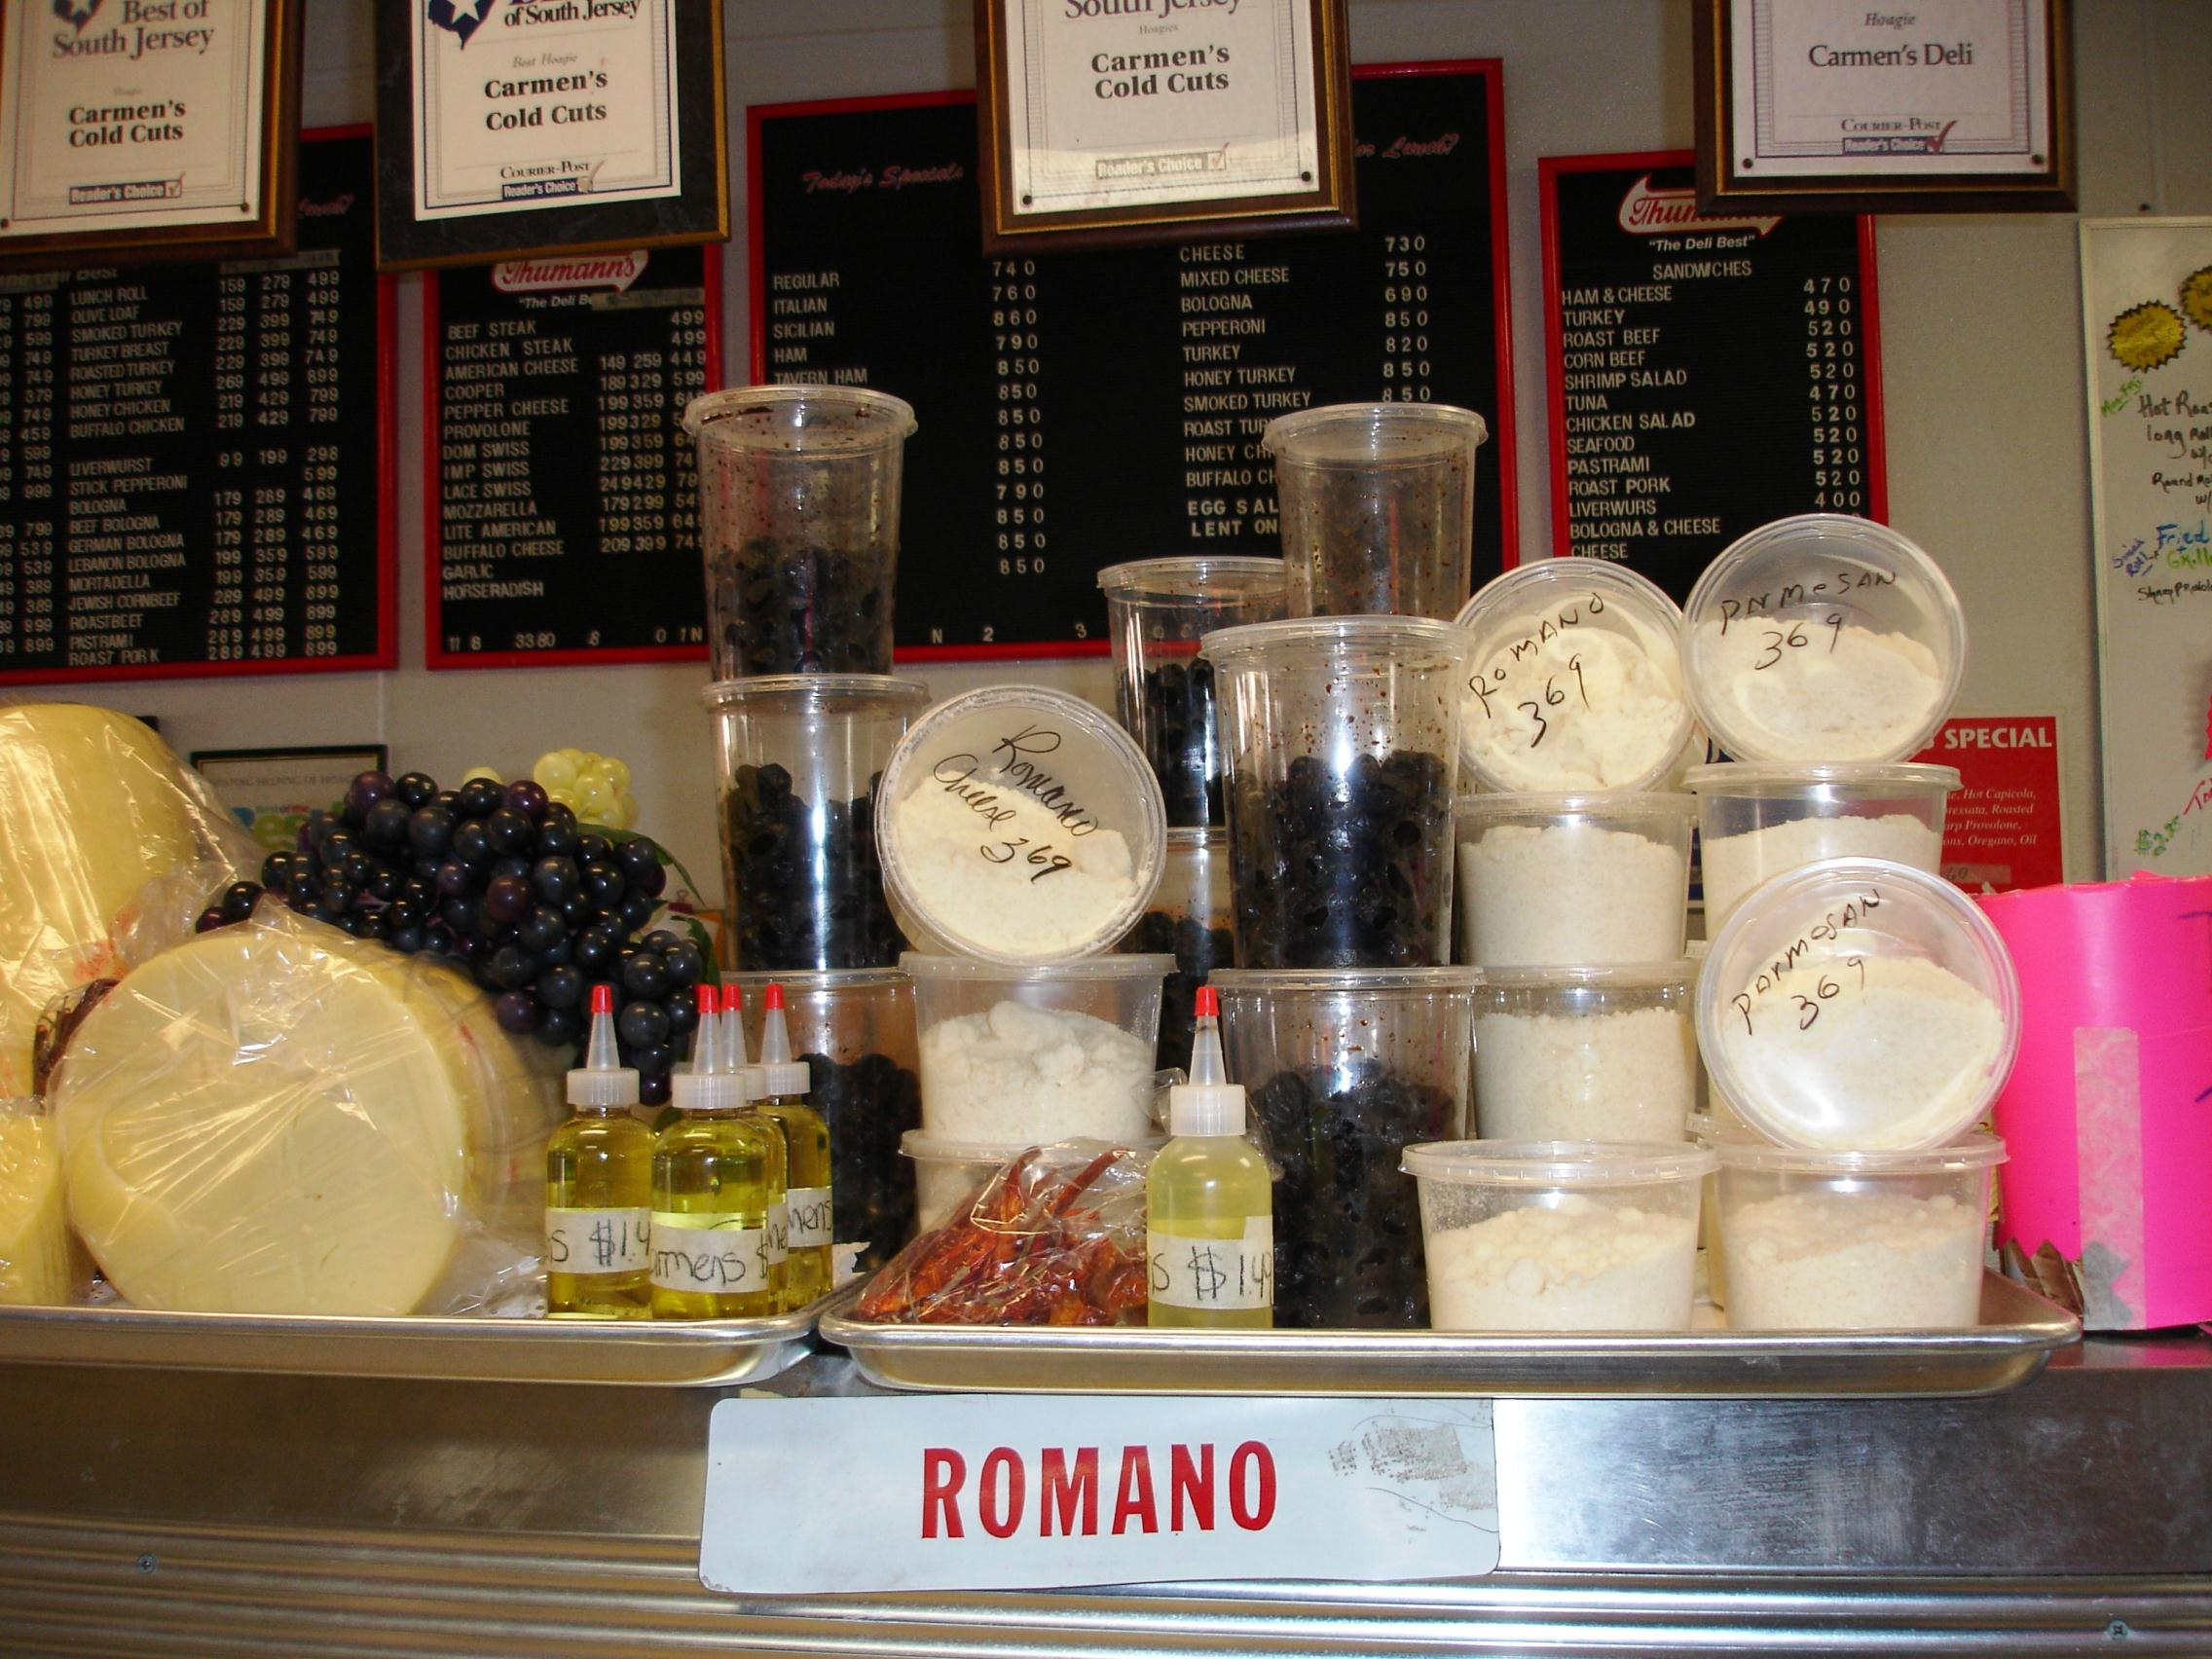 Carmen's offers cheeses, olives, and hoagie oils to go.